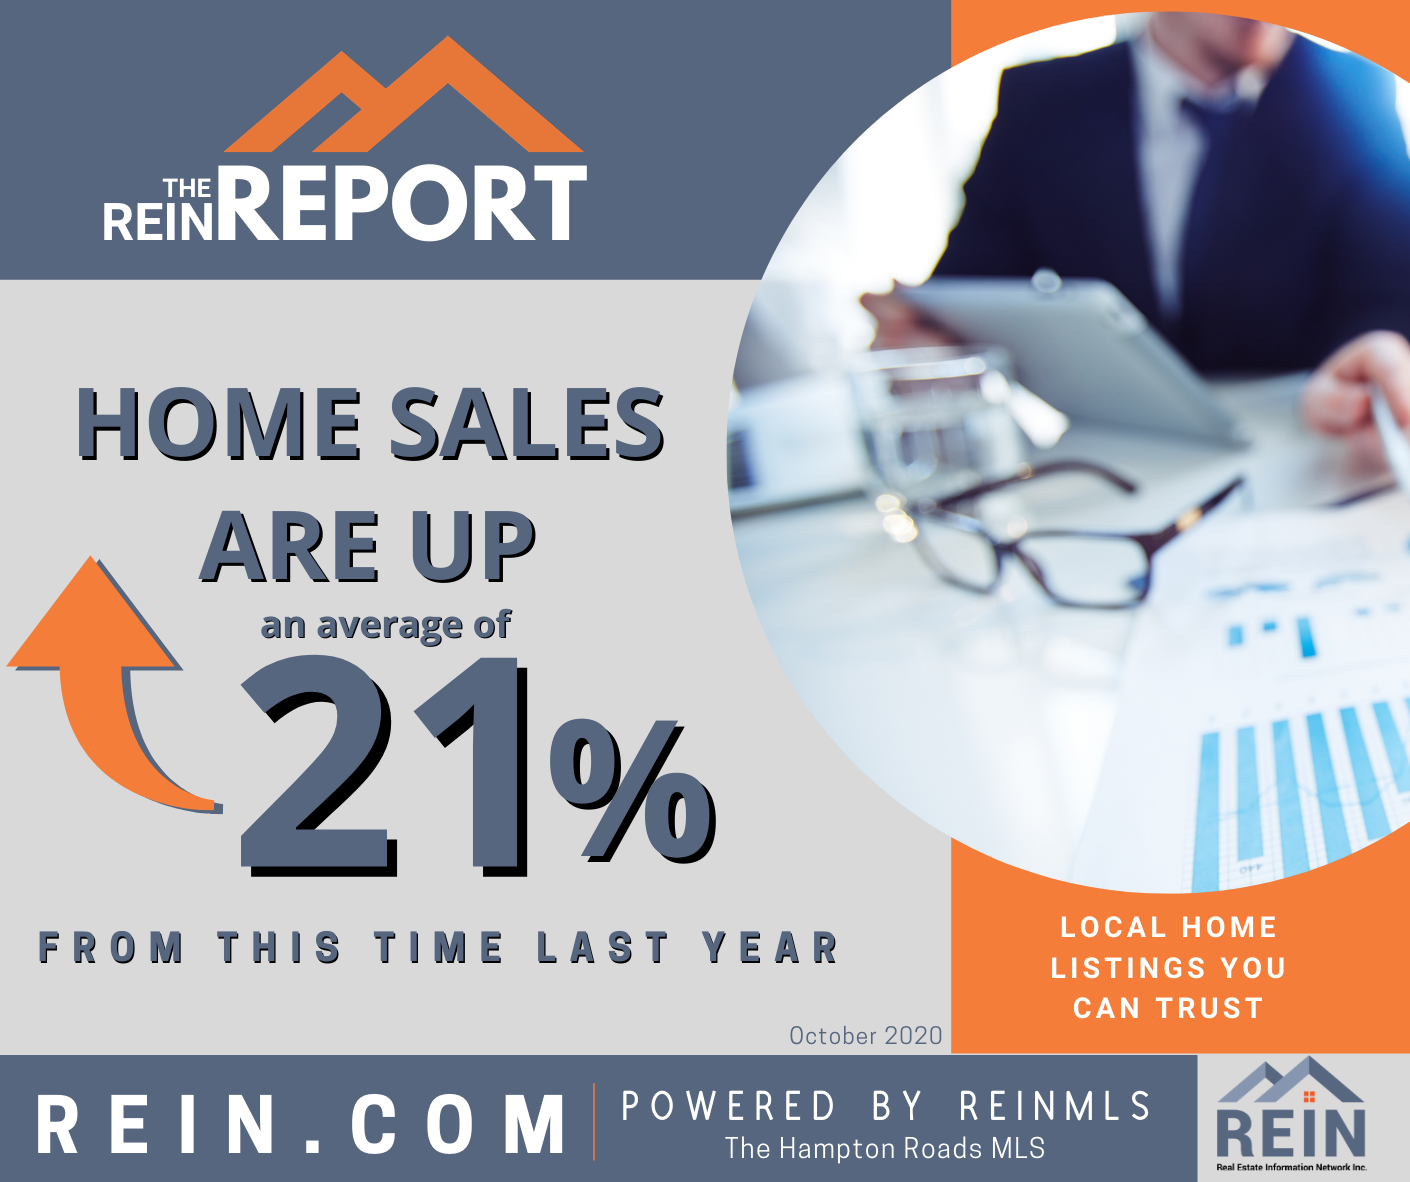 the rein report november 2 homes sales up